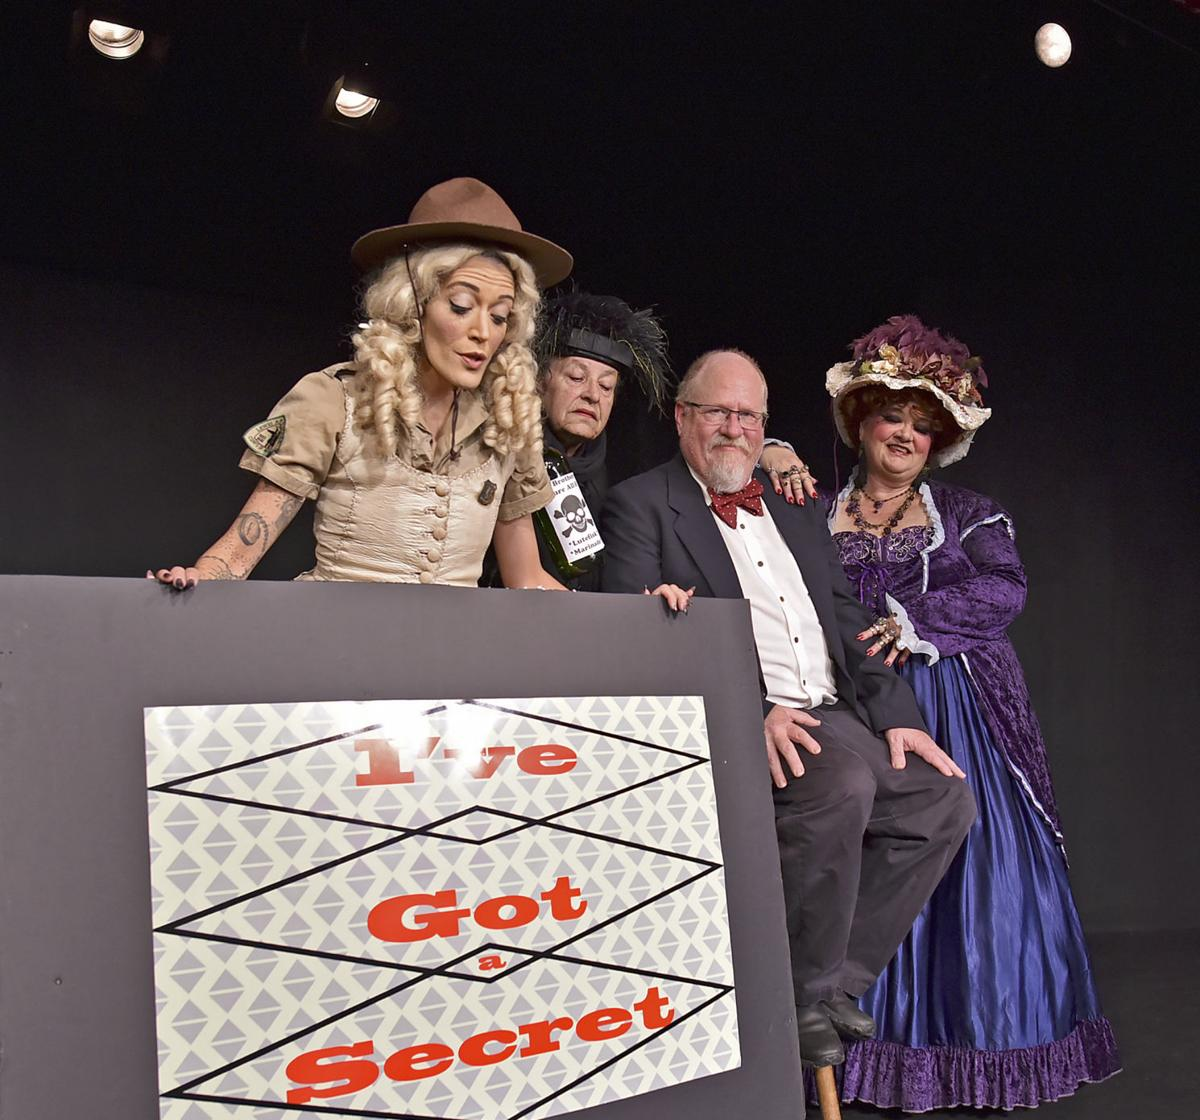 'Secret' funds Be An ASOC Angel recreates classic TV game show, raises money for theater group